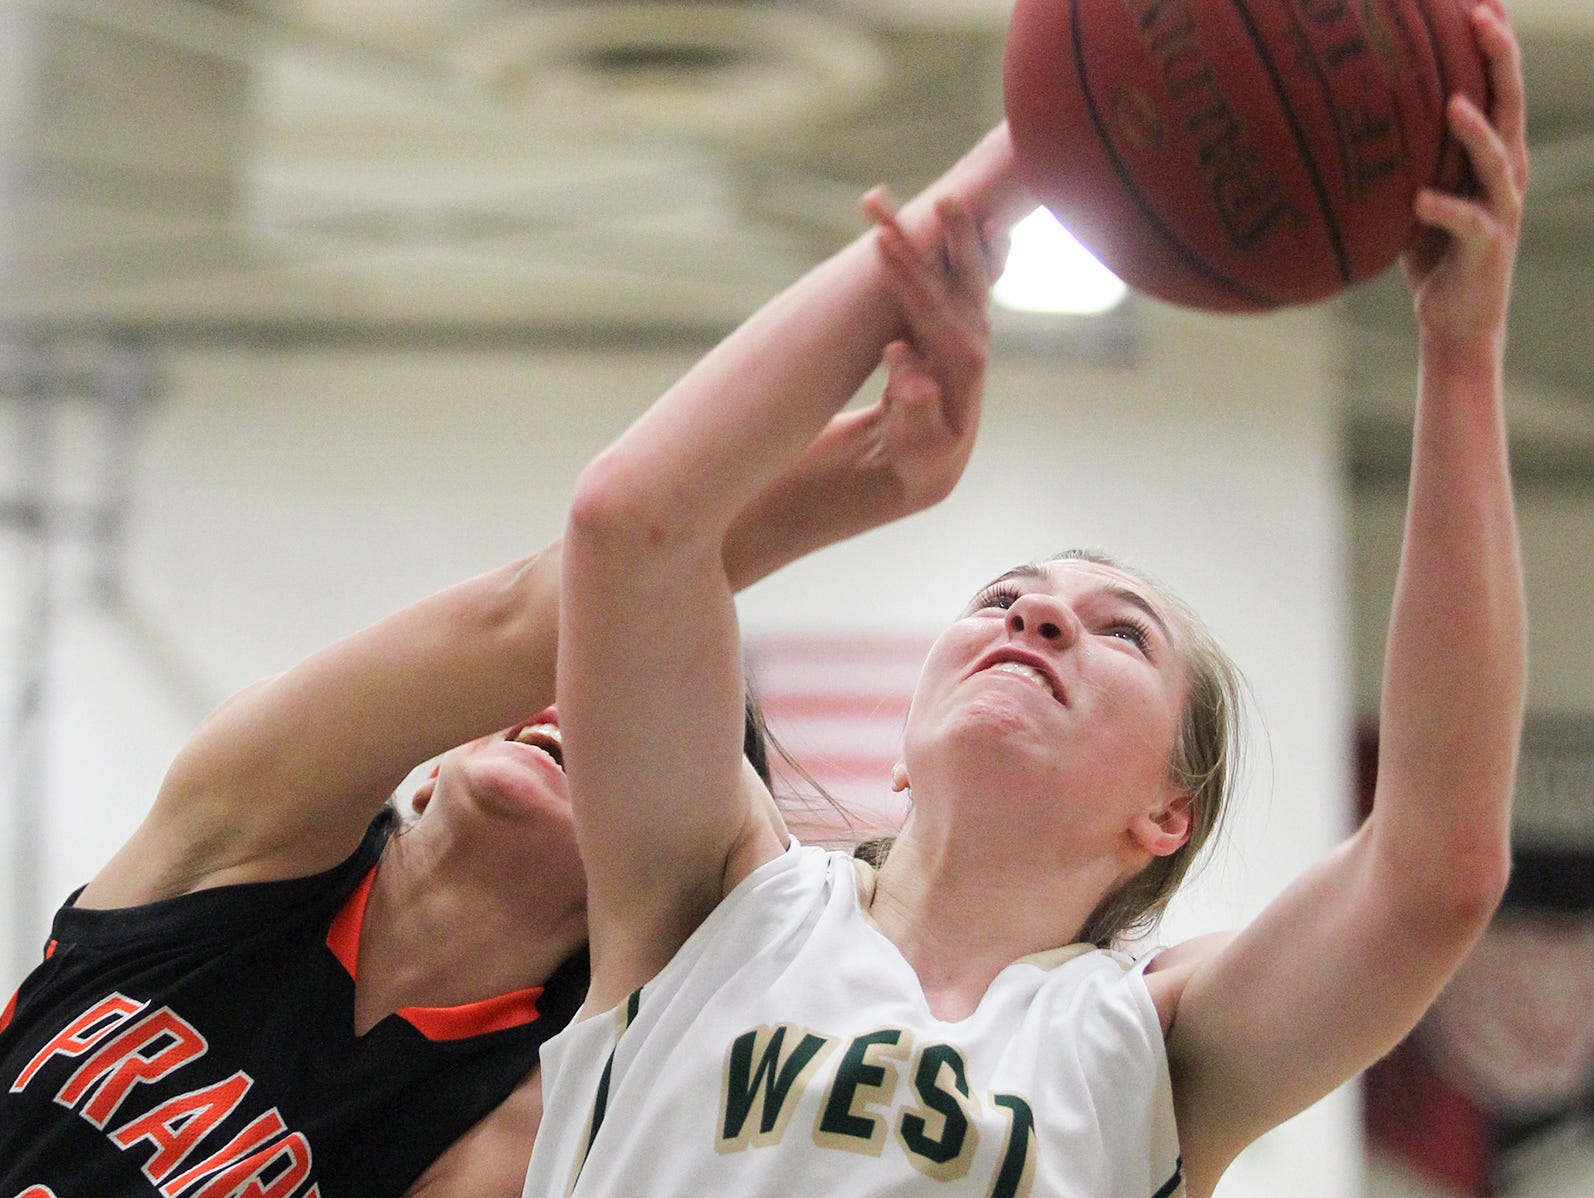 West High's Ali Tauchen fights for a rebound during the Women of Troy's game against Cedar Rapids Prairie on Tuesday, Dec. 1, 2015.